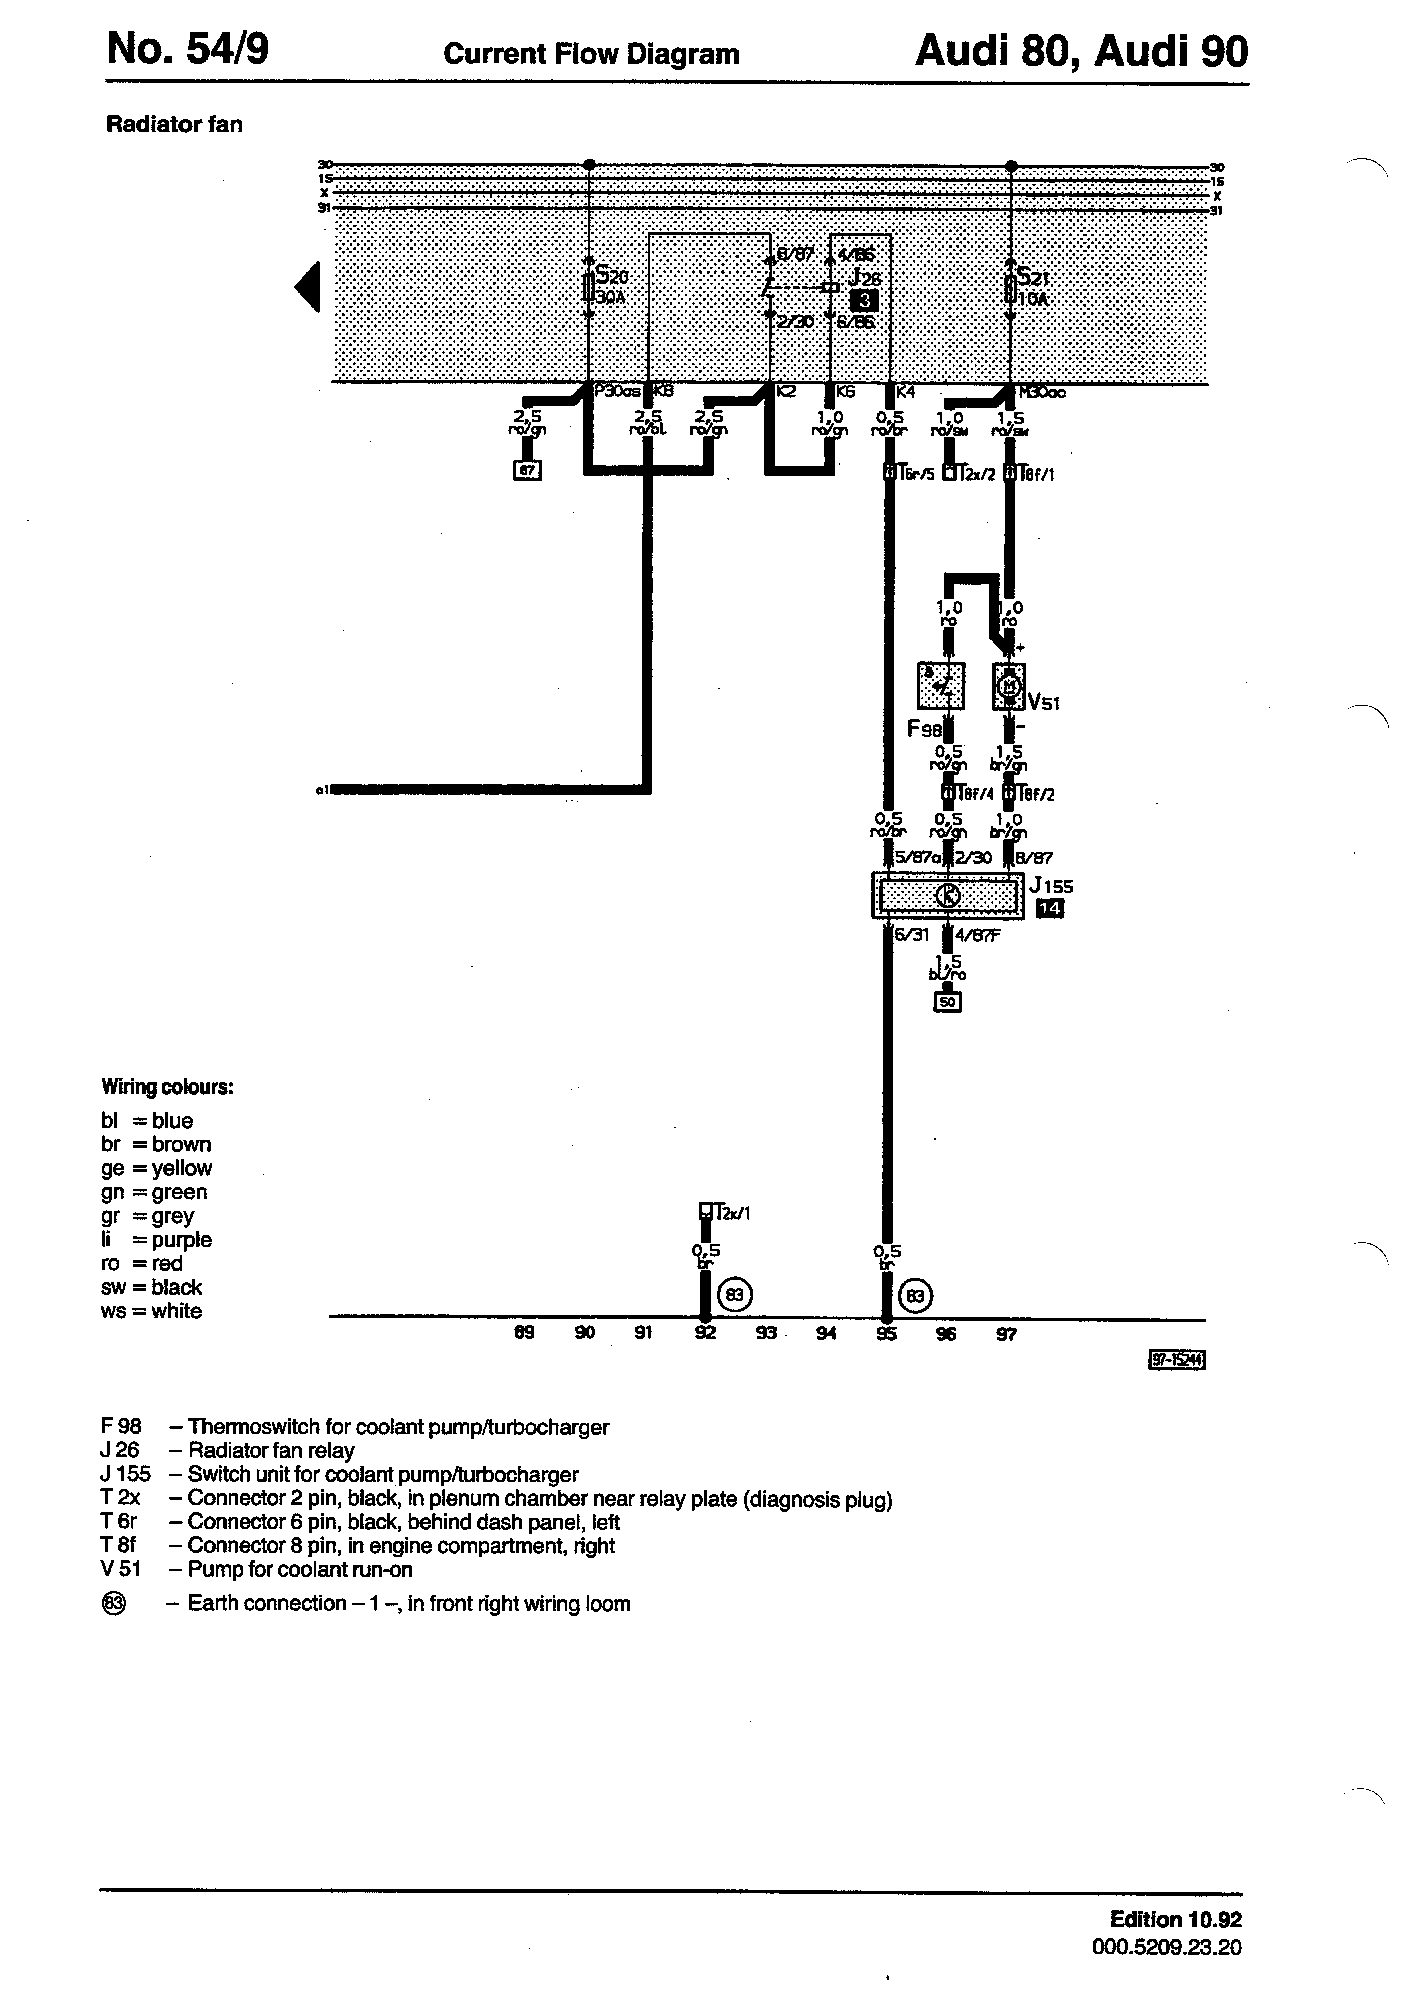 wiring diagrams component lookup pump for coolant run on